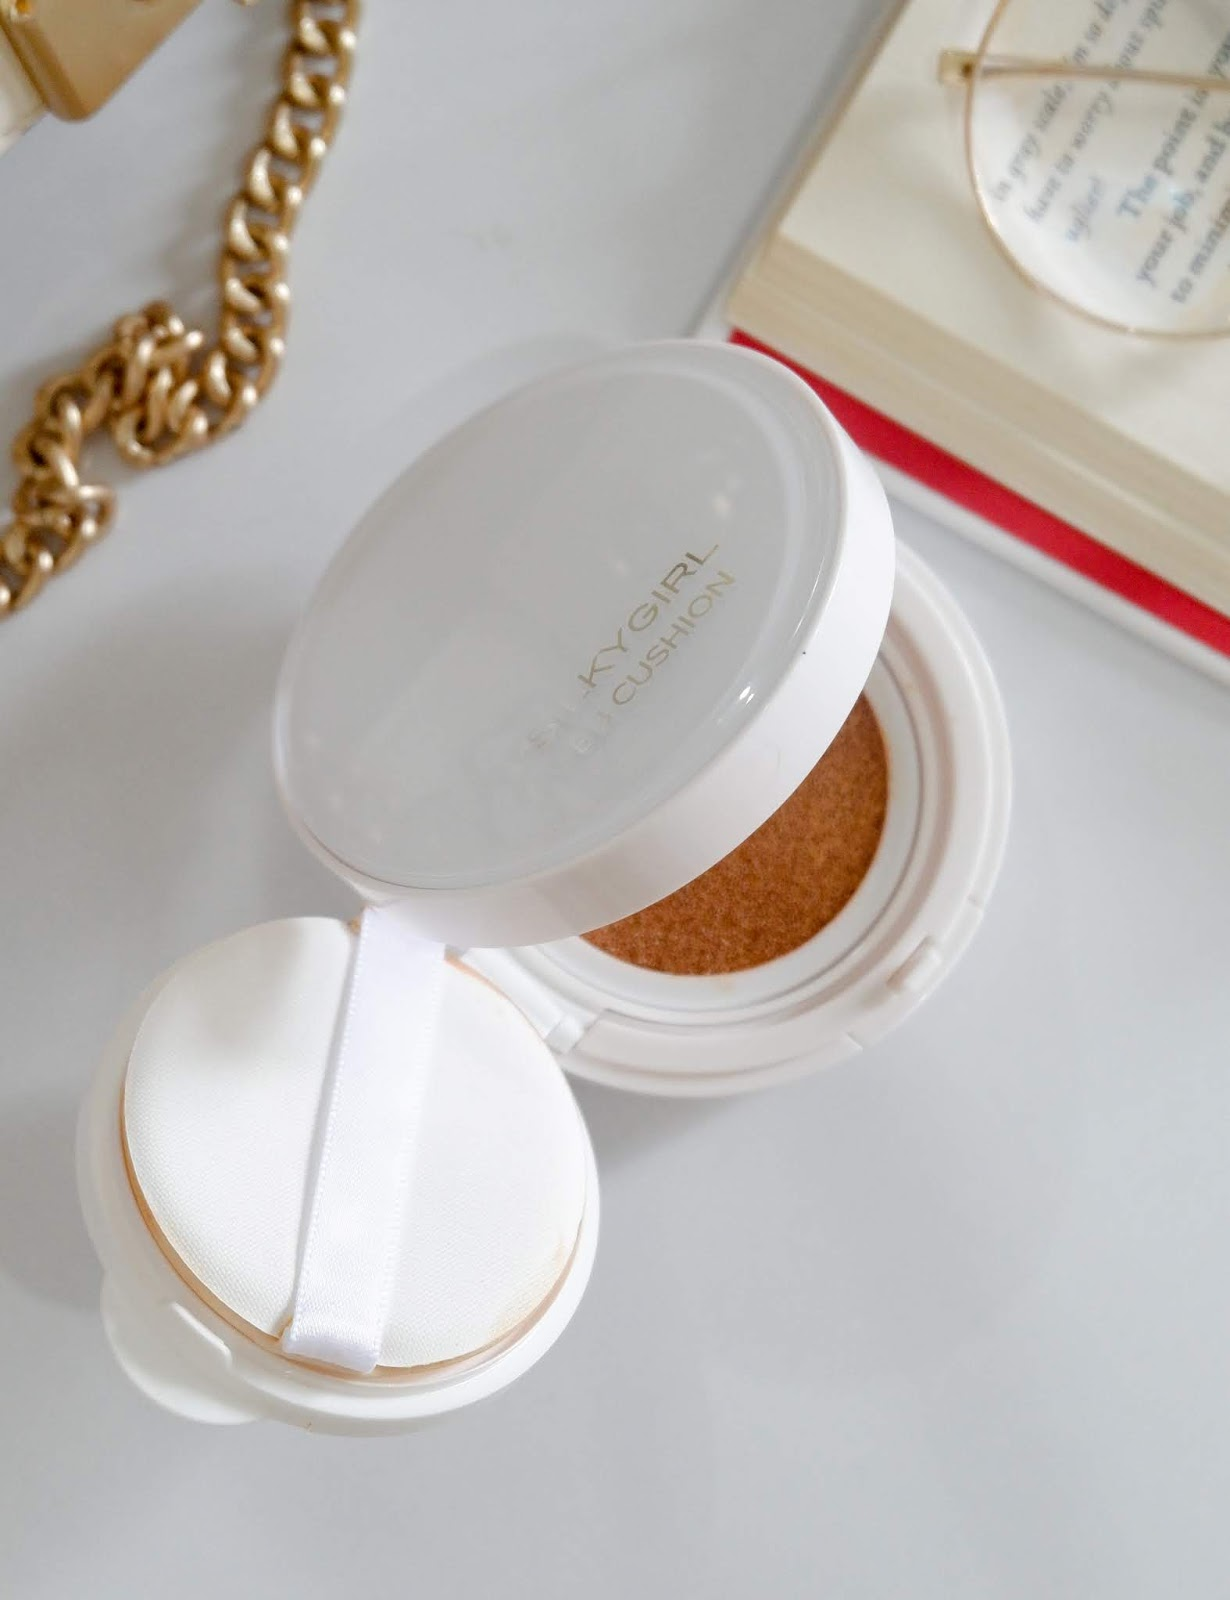 SILKYGIRL: MAGIC BB CUSHION REVIEW